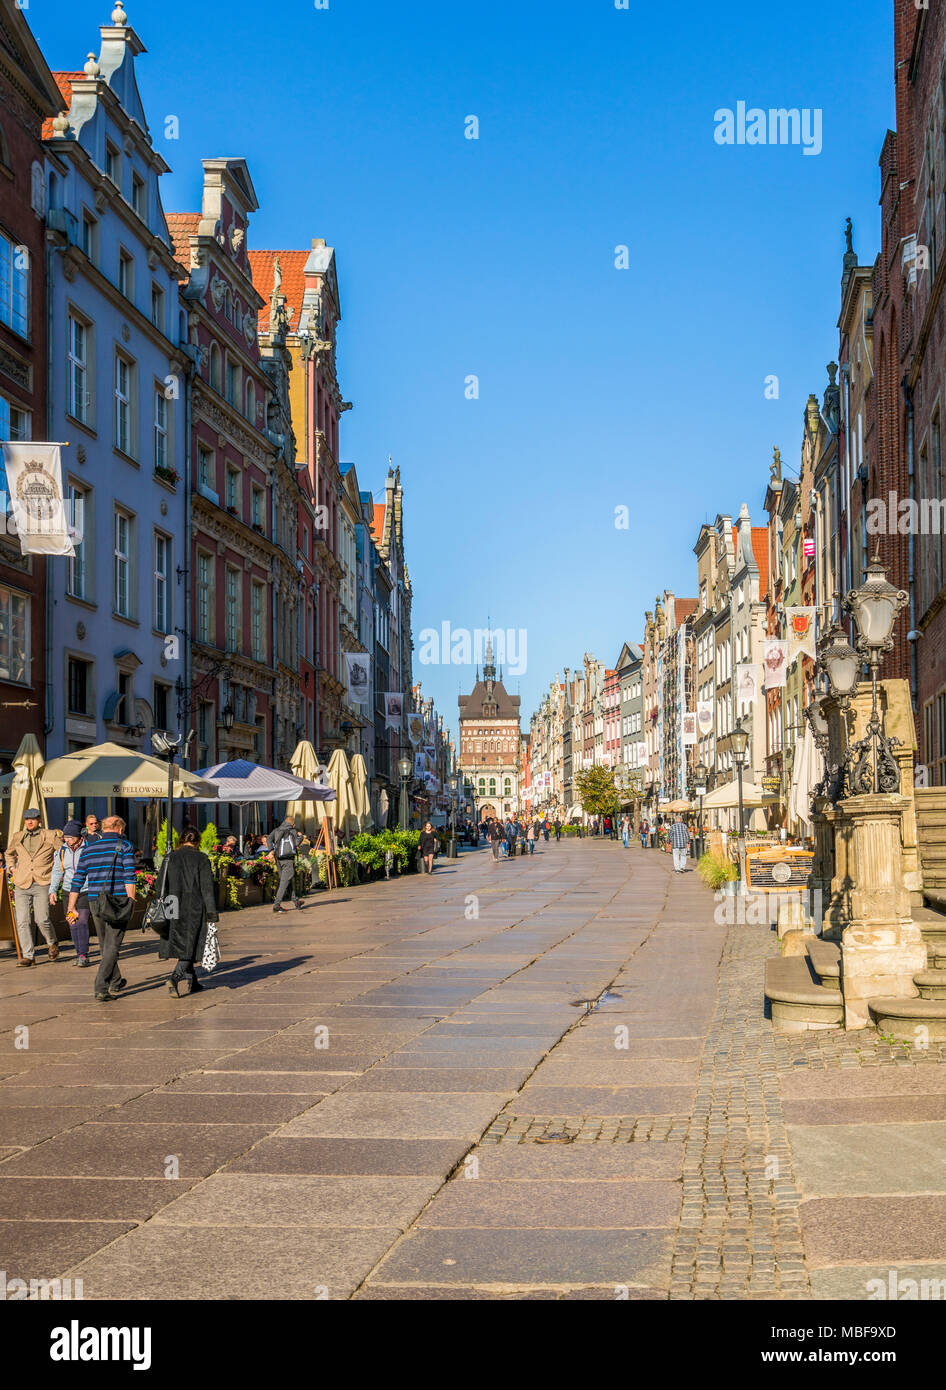 Tourists on Long Lane in the city centre of Gdansk, Poland, Europe Stock Photo